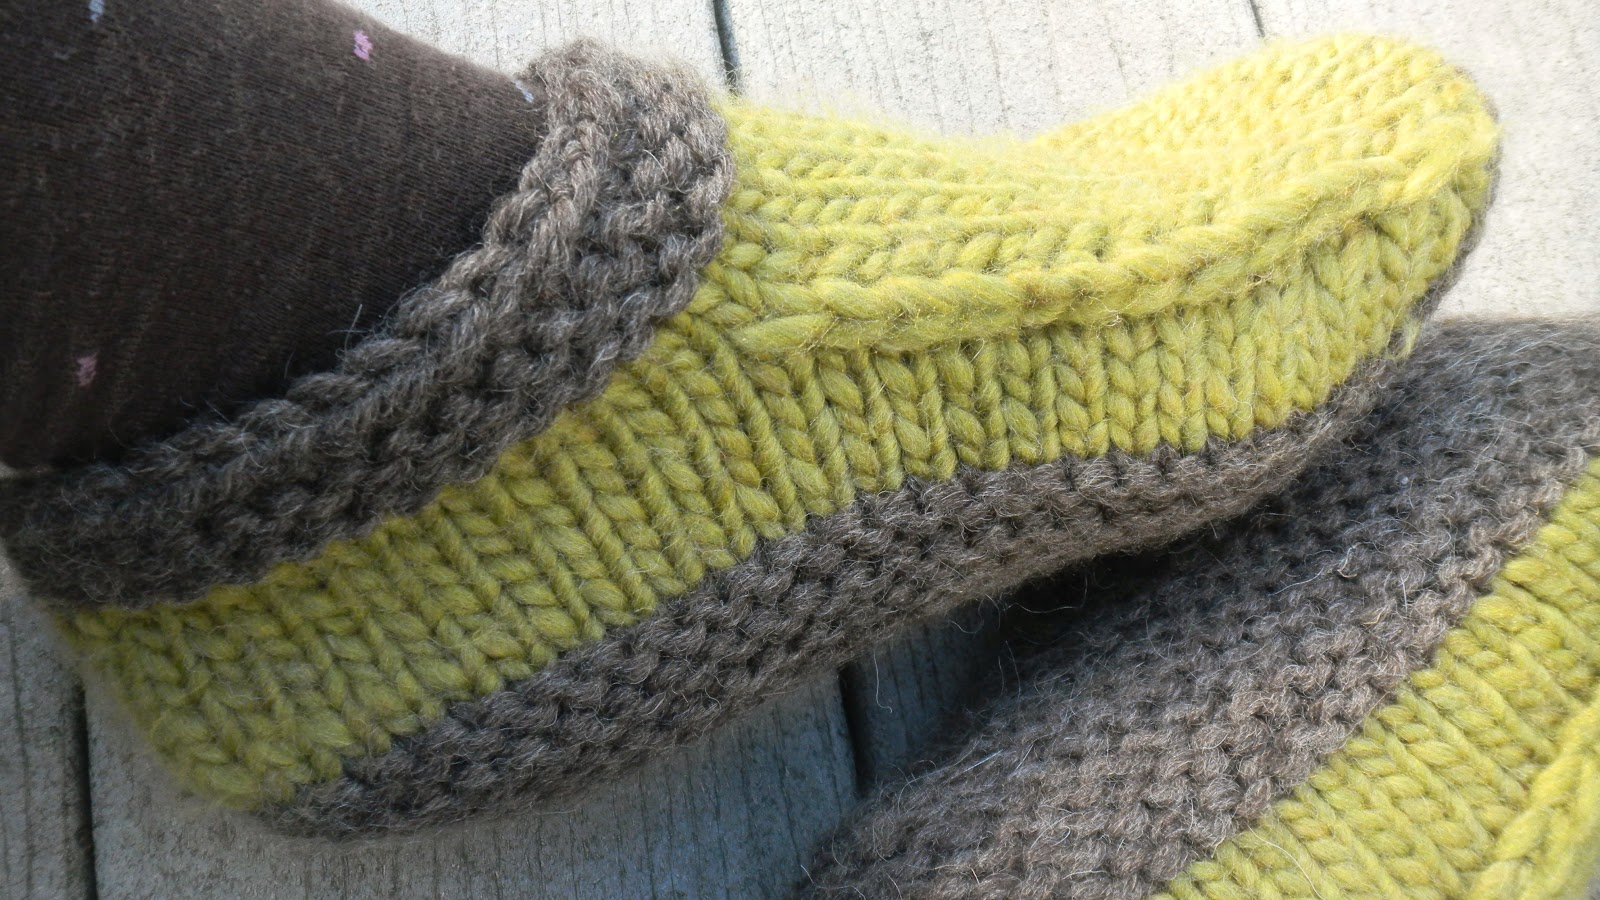 modest creations by michelle: cozy new slippers